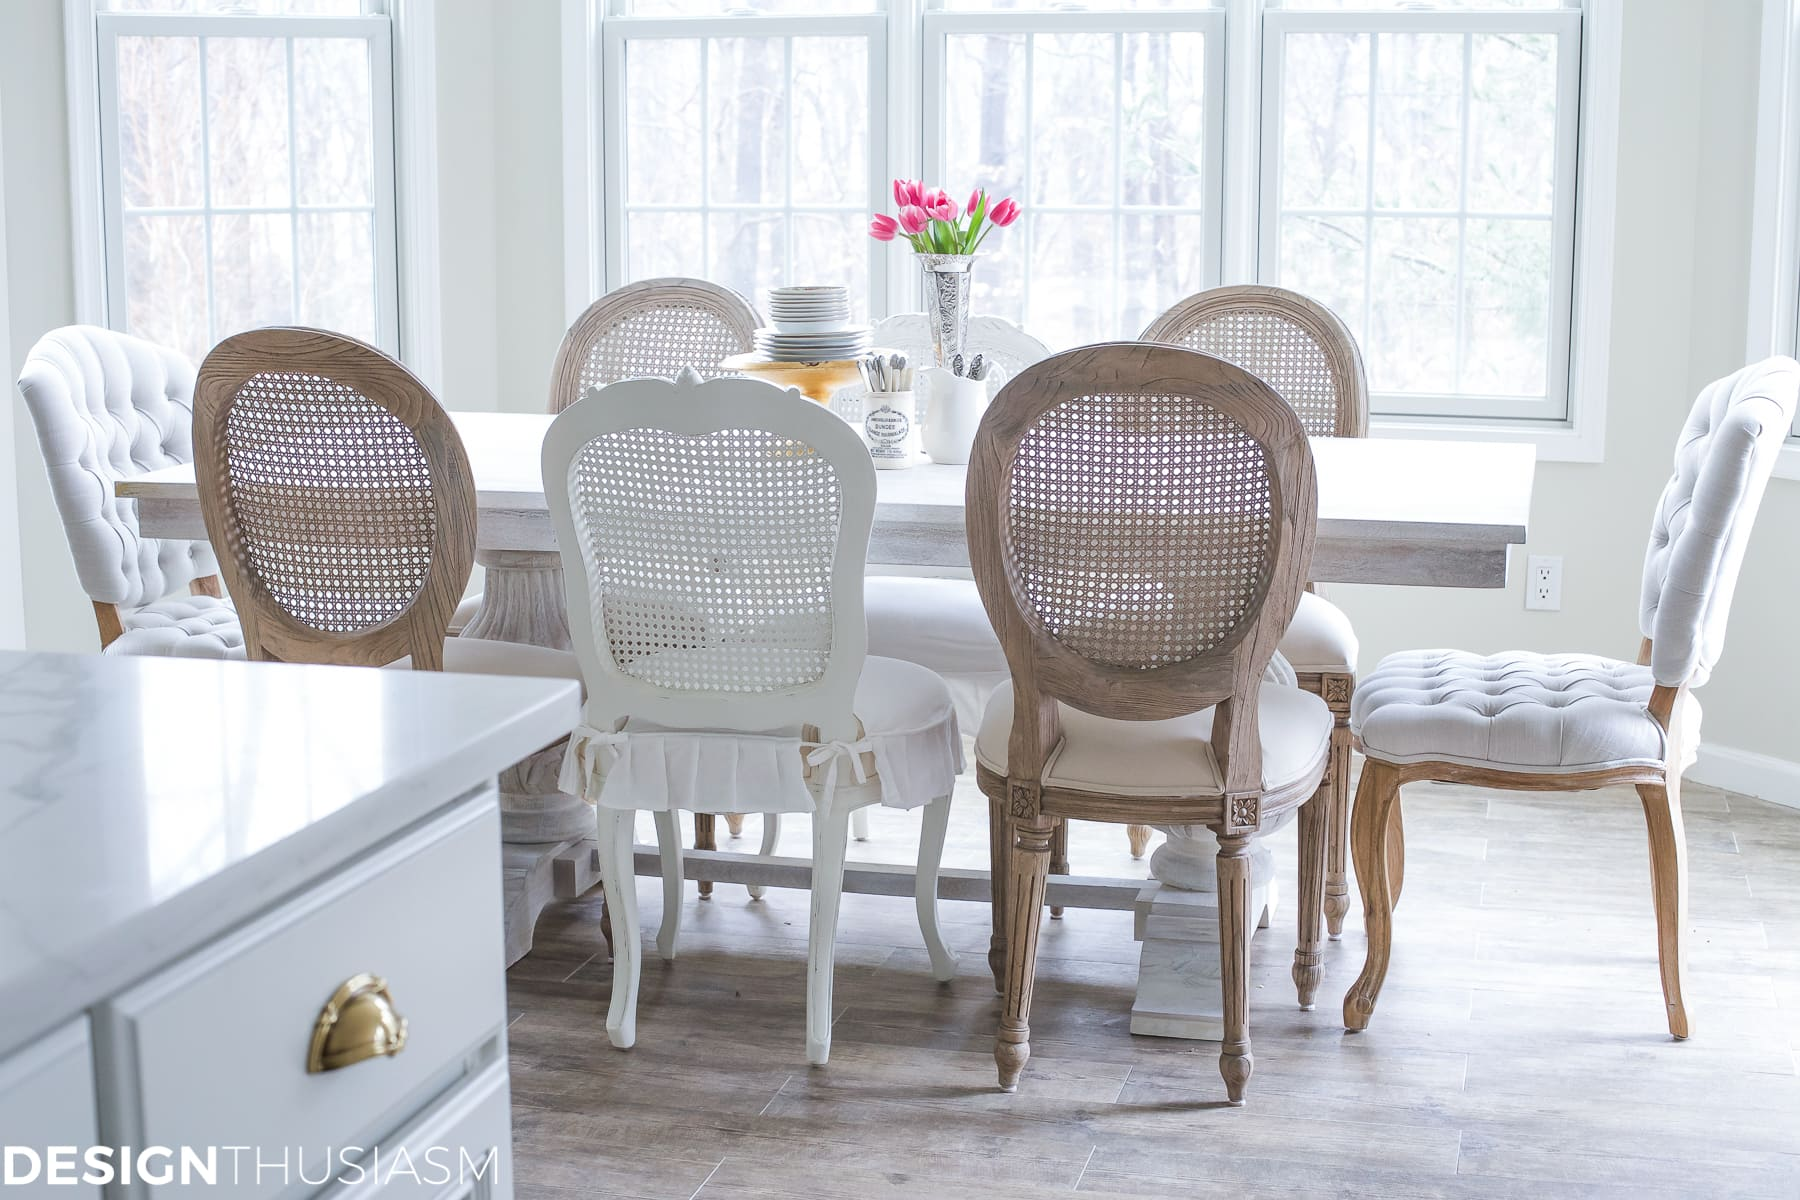 Transforming the Breakfast Room with The Perfect Dining Table | Designthusiasm.com